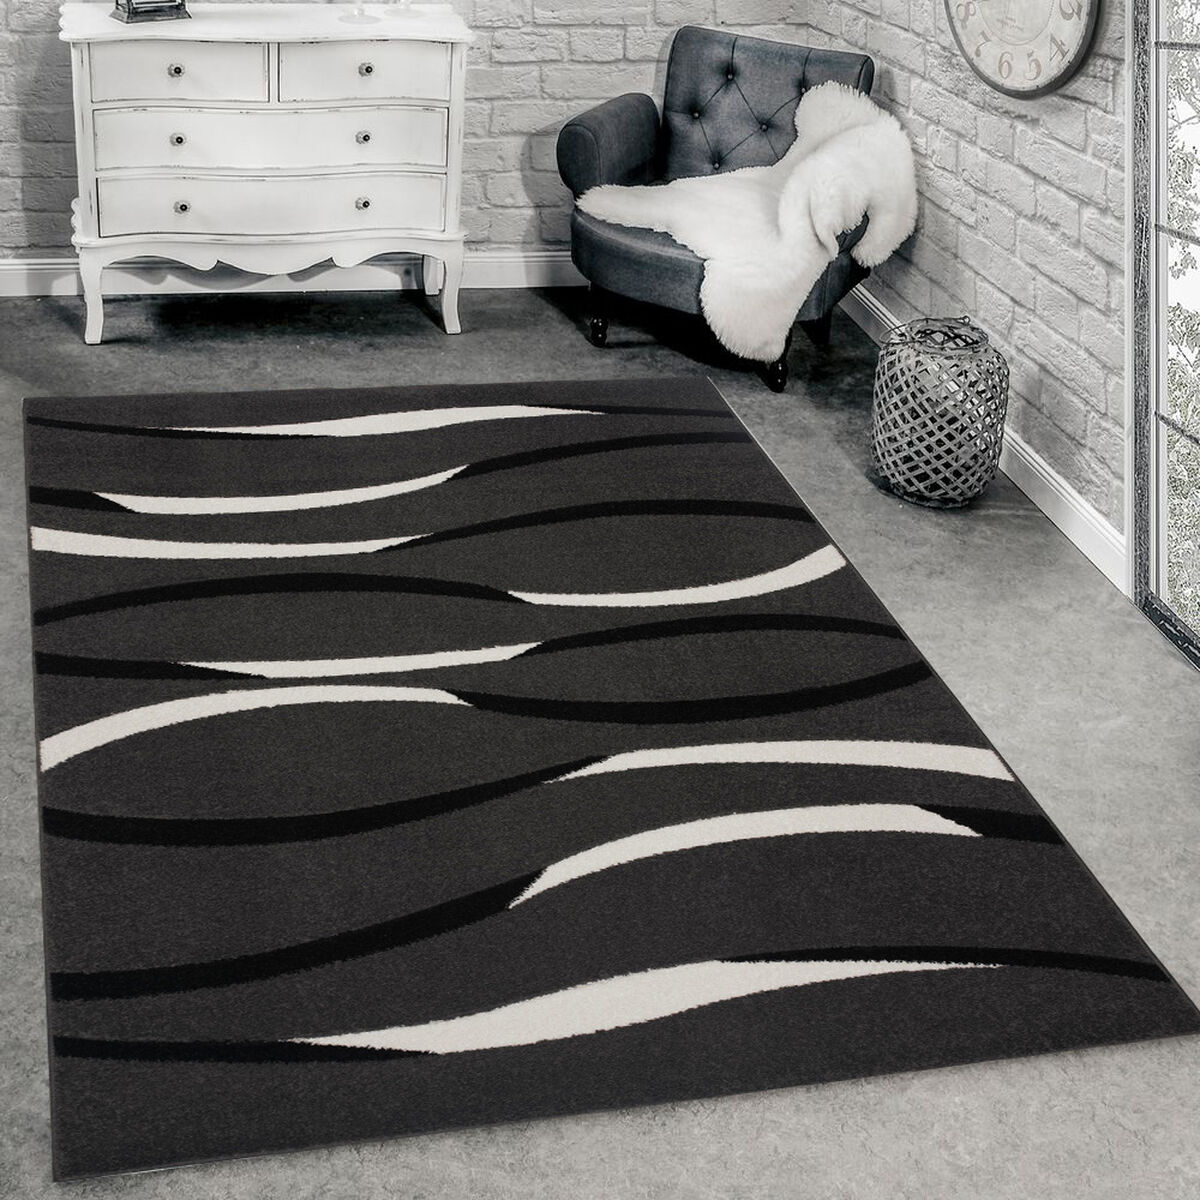 Alfombra Interior Idetex Frize Carved D6 150 x 200 cm